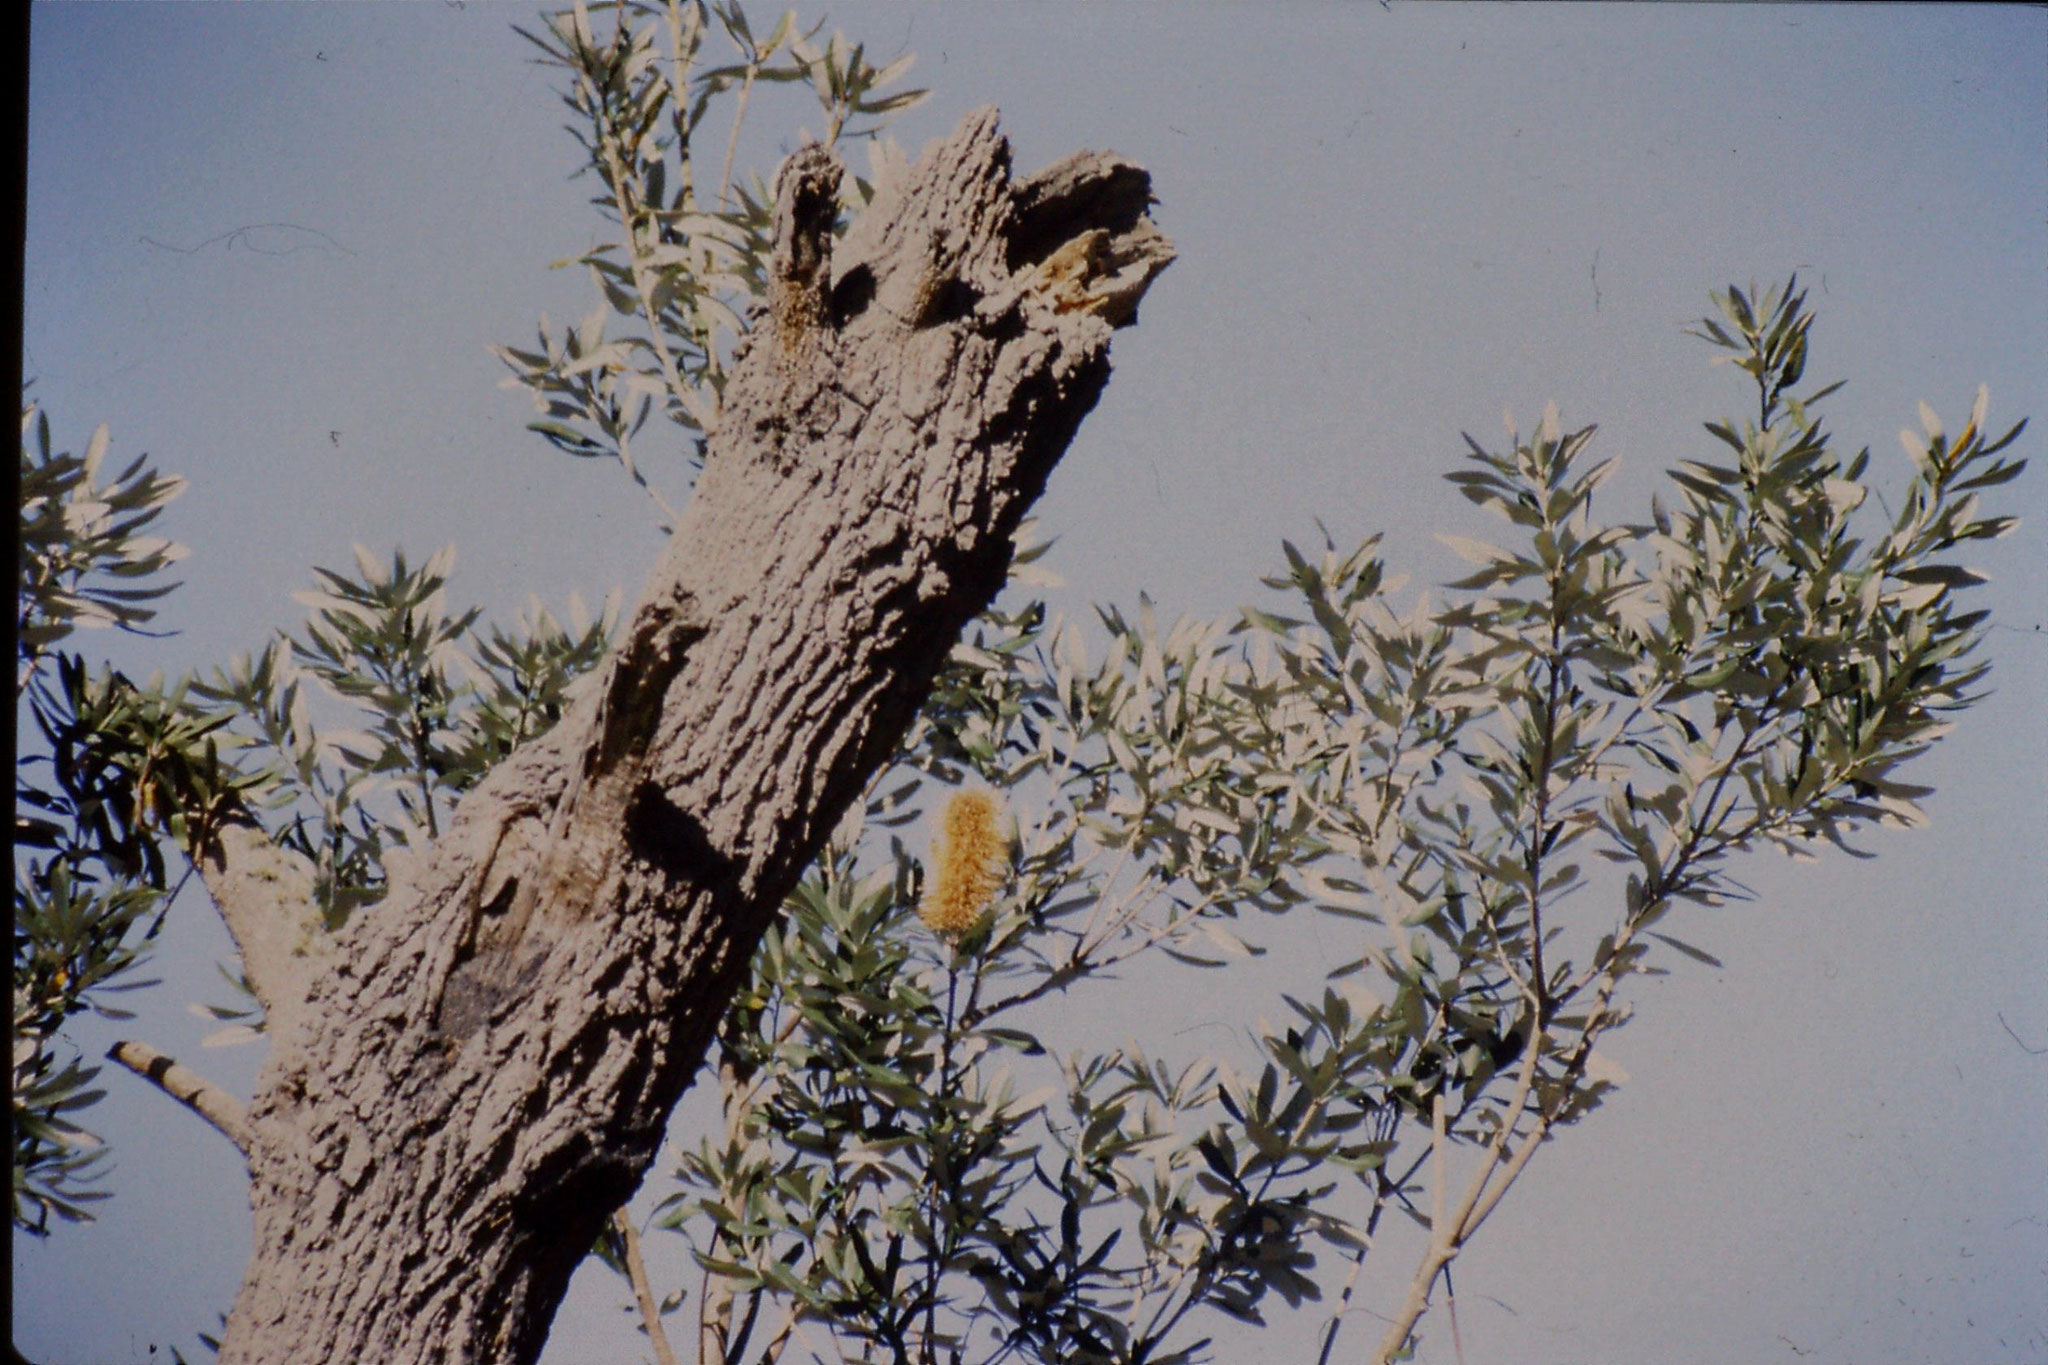 1/10/1990: 5: Gipsland Lakes Nat. Pk., Emu Bight, banksia in bloom